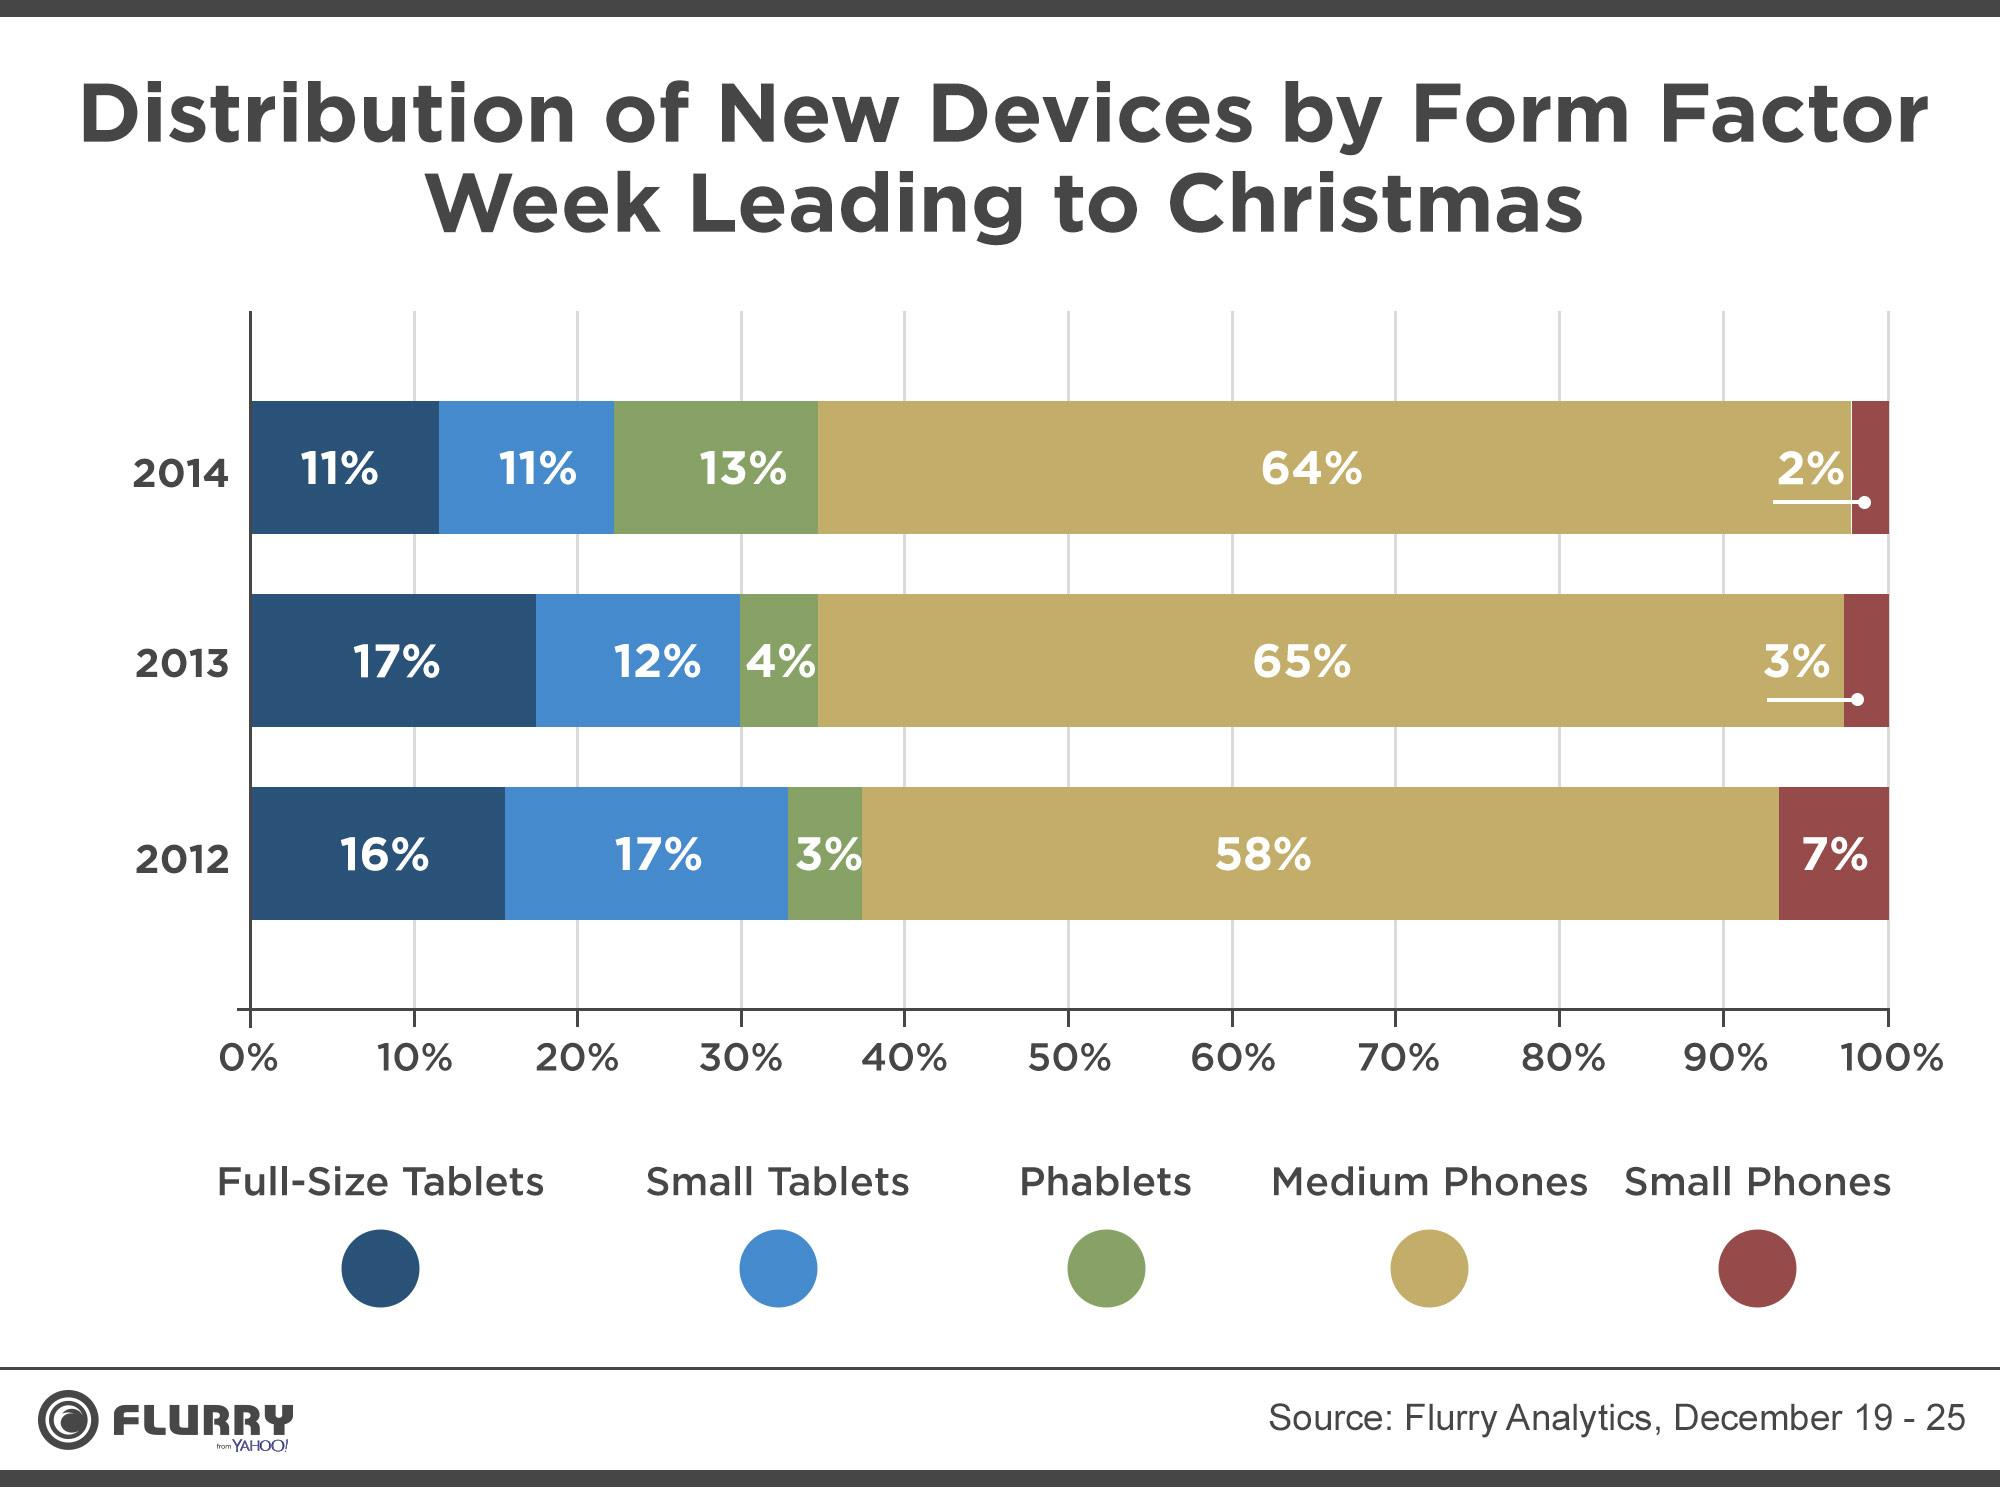 Santa Stuffs This Year's Stockings With iPhones and Phablets